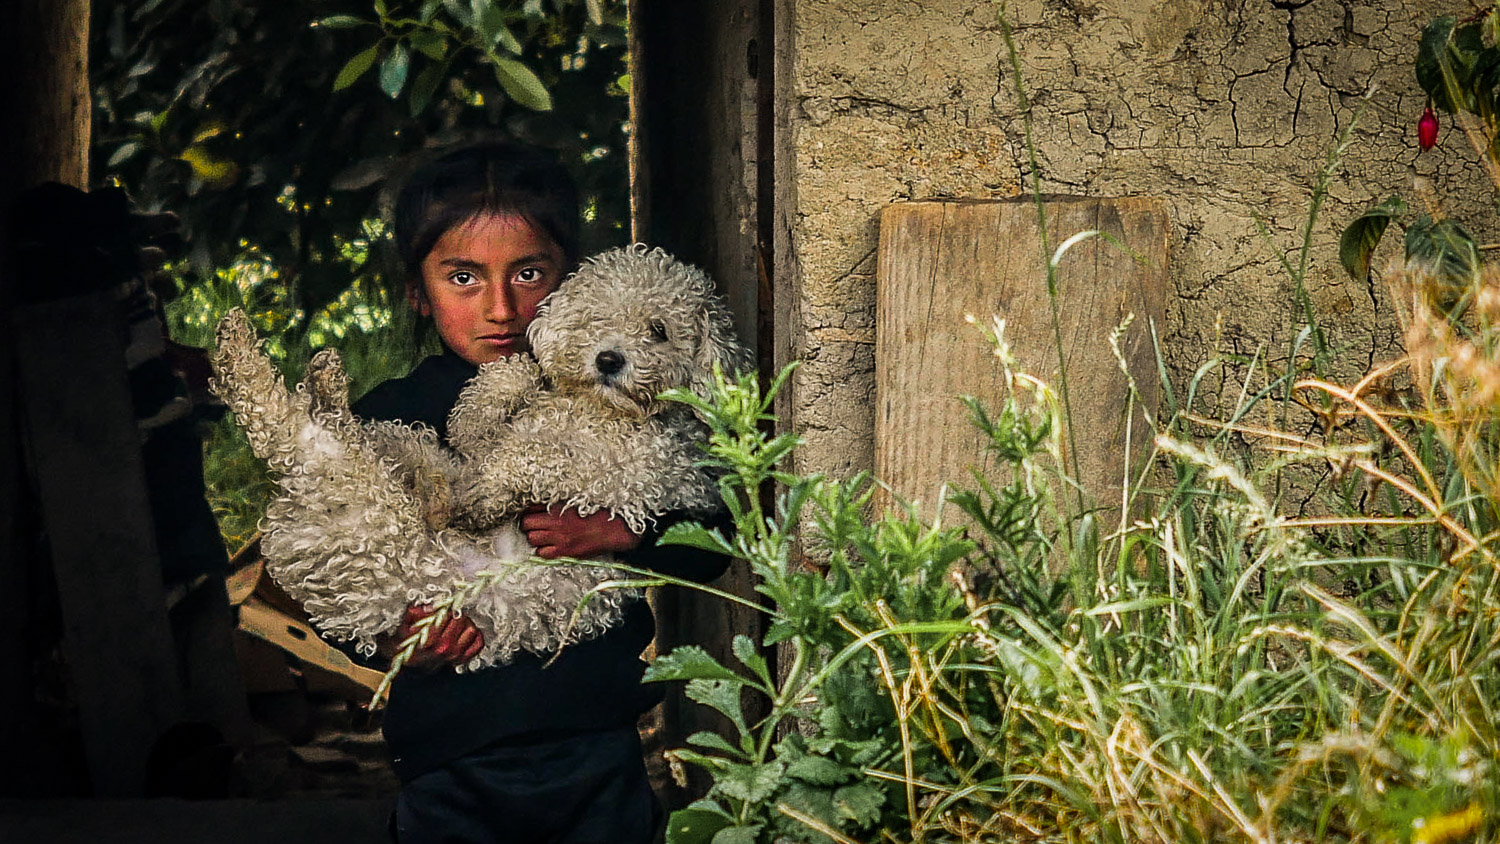 Little girl with dog. Faces of the Worlds Richest People, Ecuador - The Wayward Post